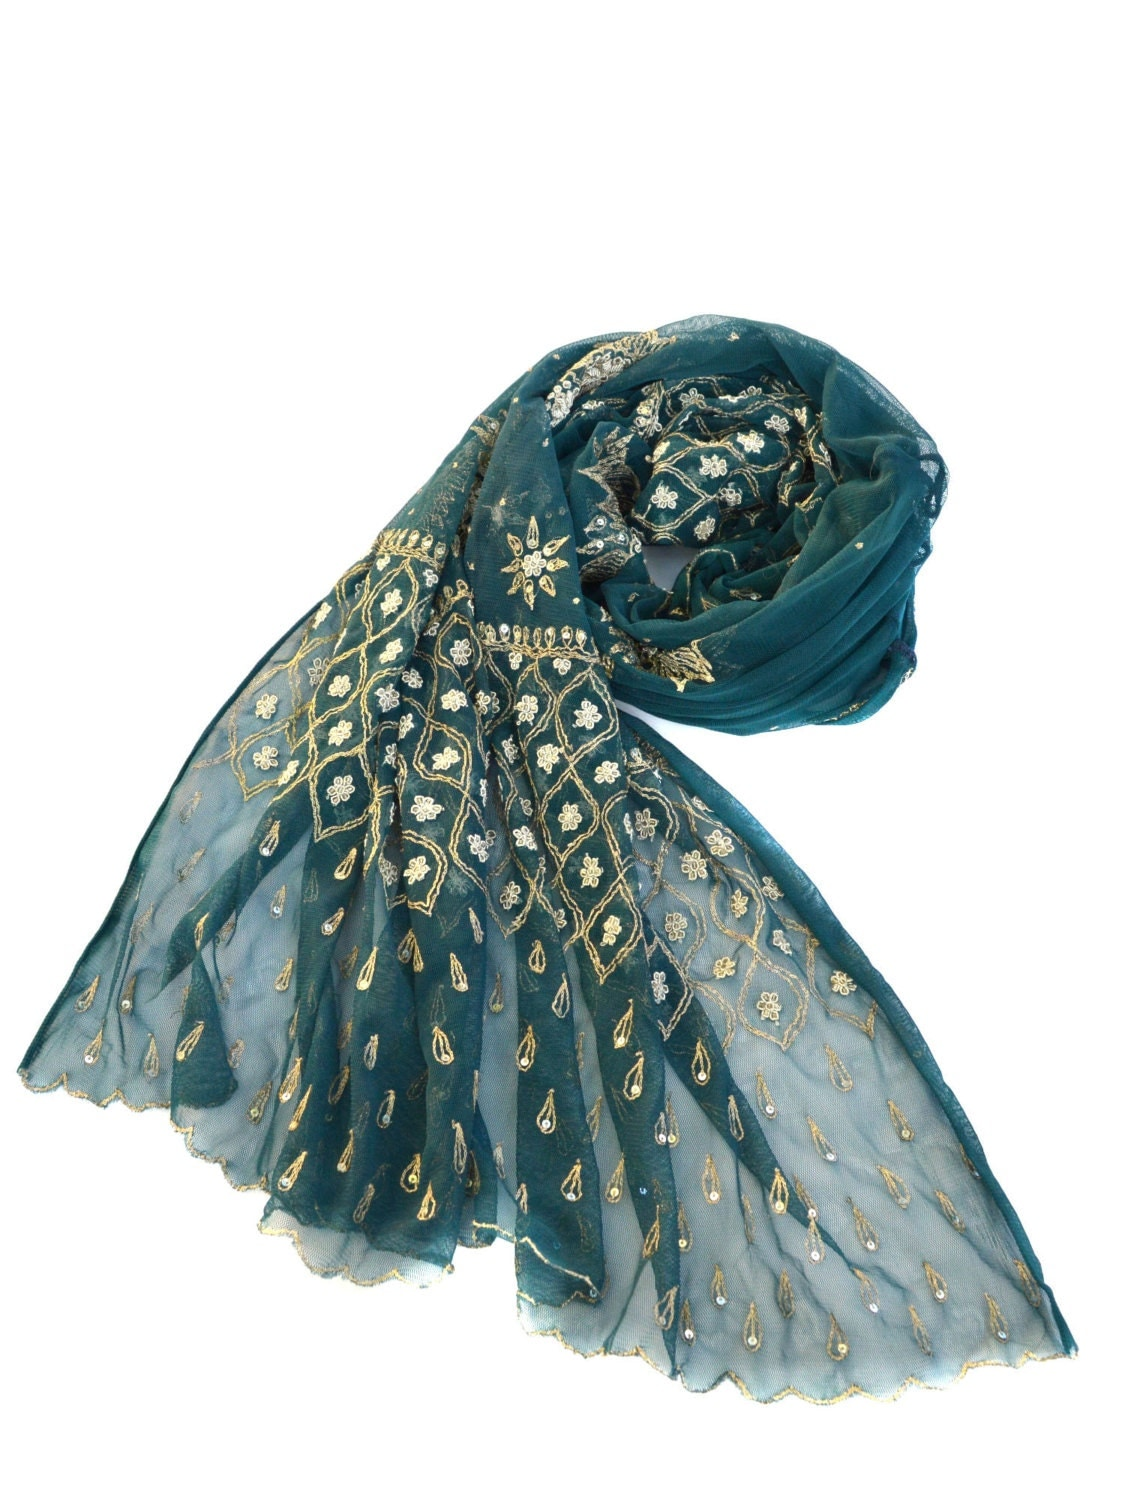 teal beaded shawl embroidered wrap large net scarf evening